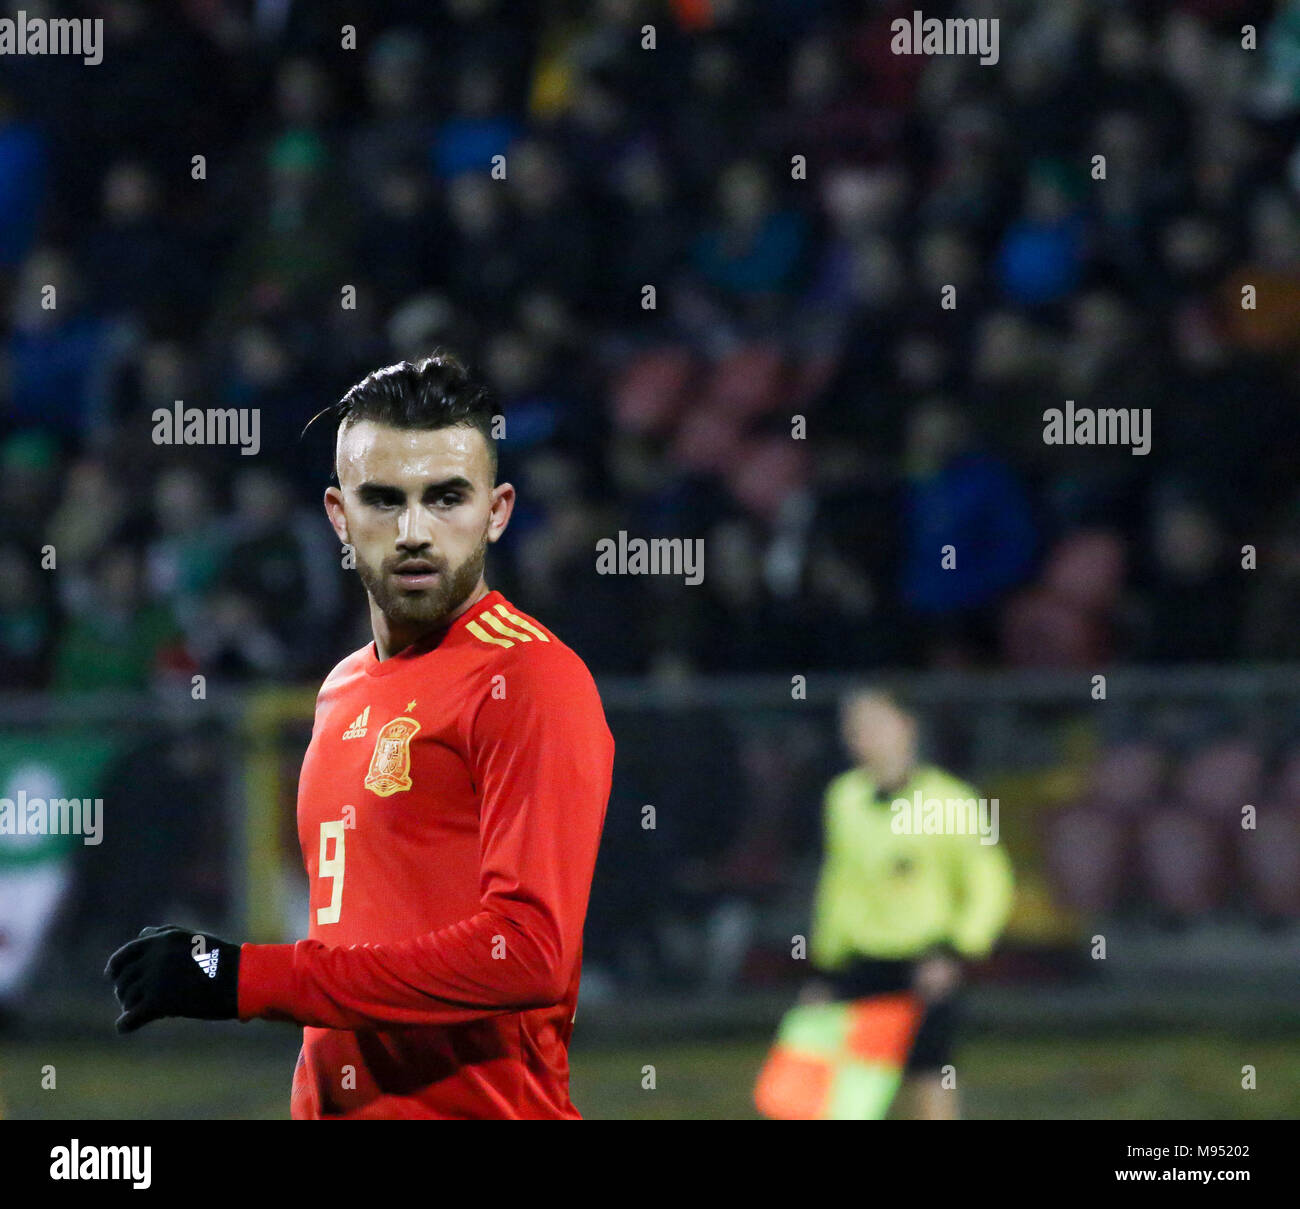 Shamrock Park, Portadown, Northern Ireland UK. 22 March 2018. International football - 2019 UEFA Under 21 Championship Qualifier - Group 2 - Northern Ireland v Spain. Spain's Borja Mayoral (9) netted a hat-trick. Credit: David Hunter/Alamy Live News. - Stock Image